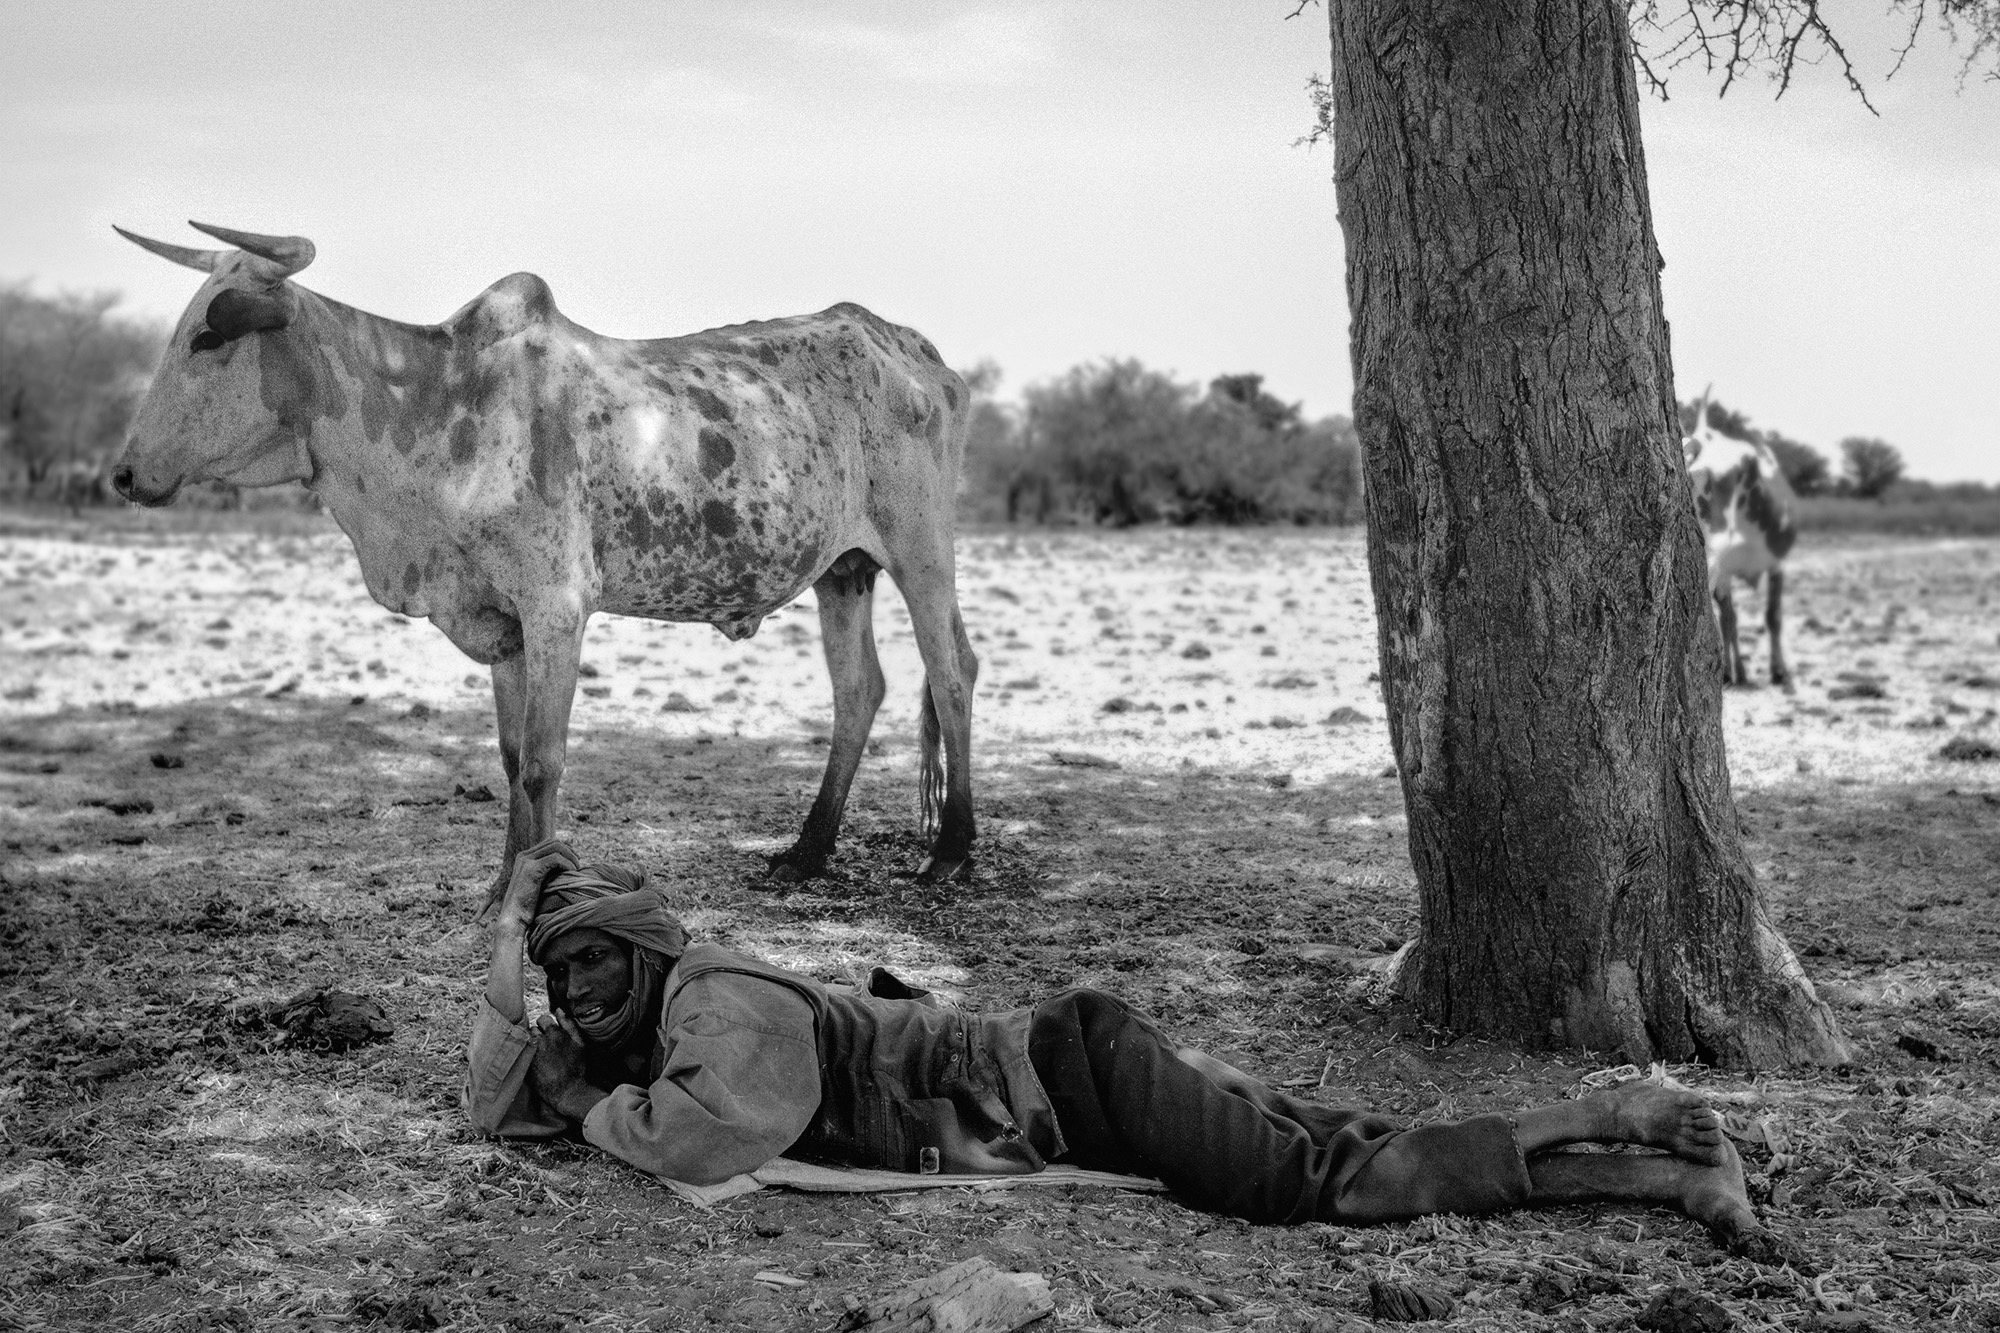 Nomad cattle herder near Oursi, Burkina Faso